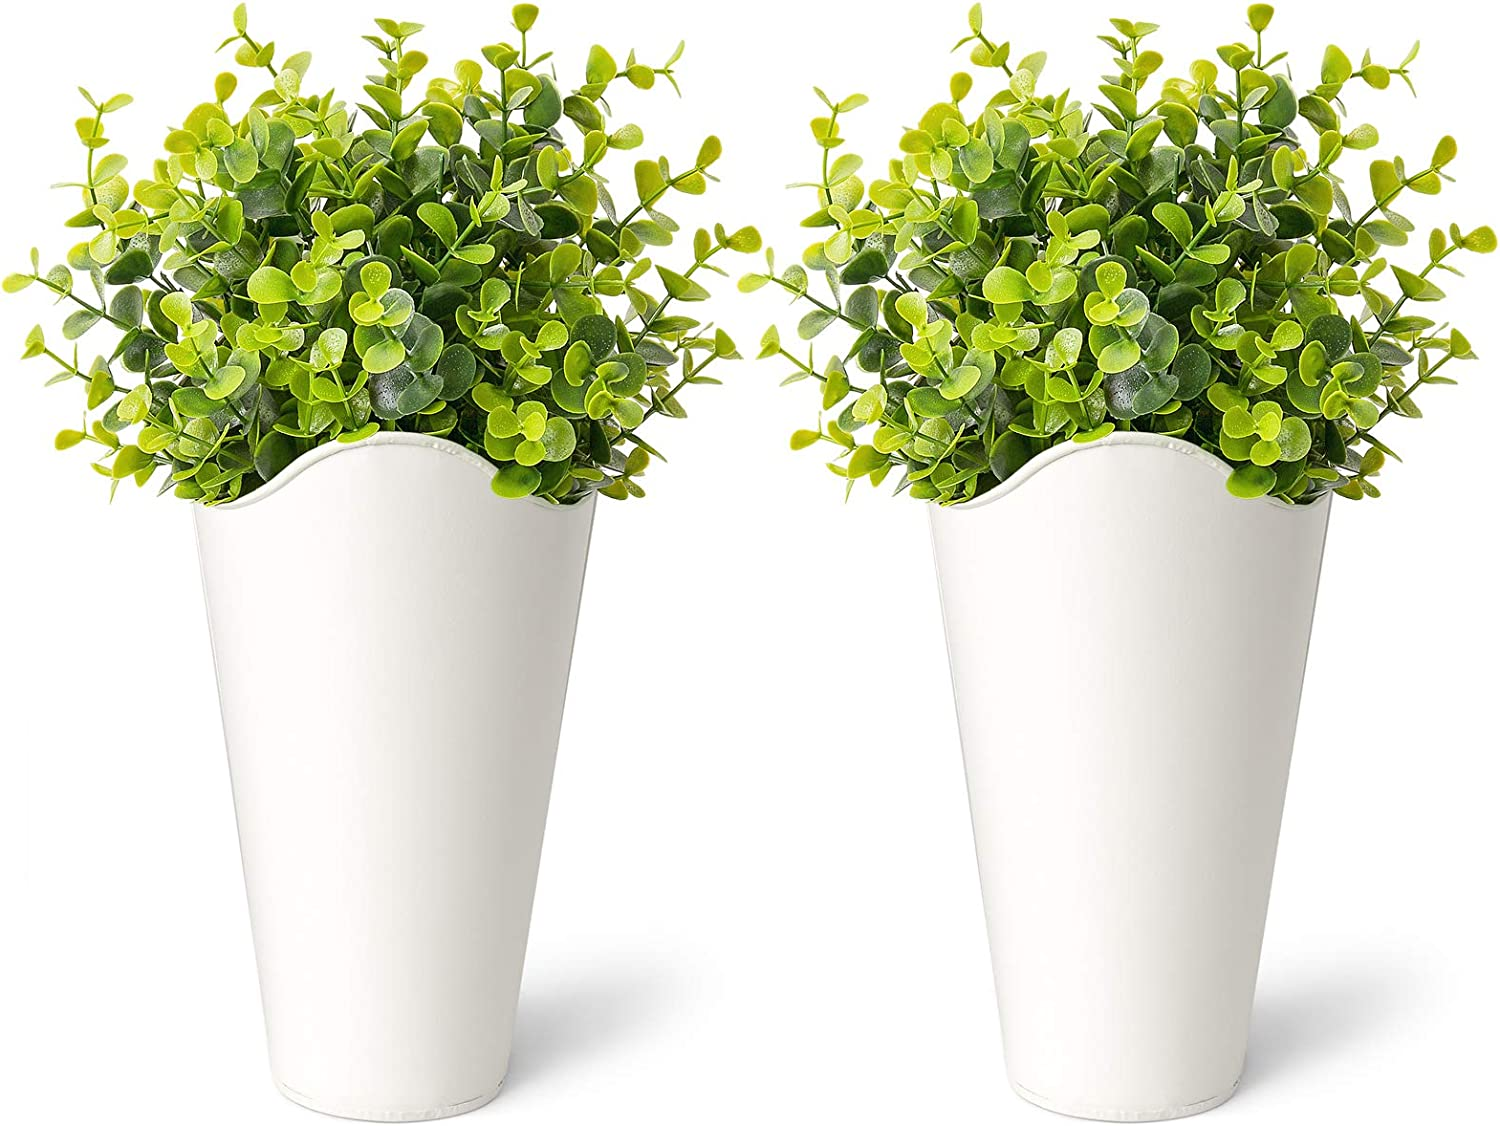 Dahey 2 Pack Galvanized Metal Wall Planter with Artificial Eucalyptus Farmhouse Style Hanging Wall Vase Planters Flowers Holder for Country Rustic Home Wall Decor,White